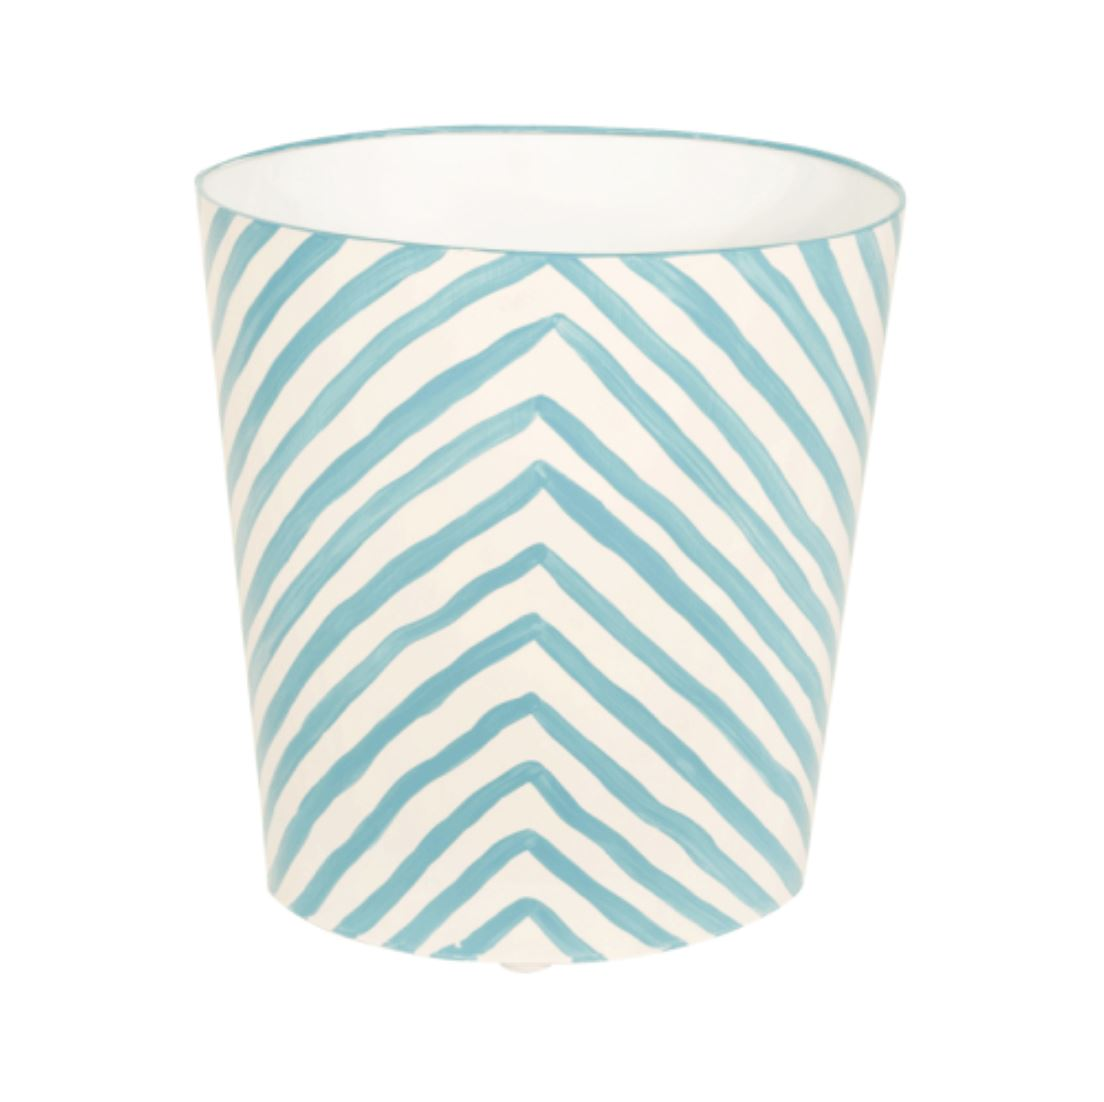 Zebra Oval Wastebasket in Turquoise - Shop Bath Accessories